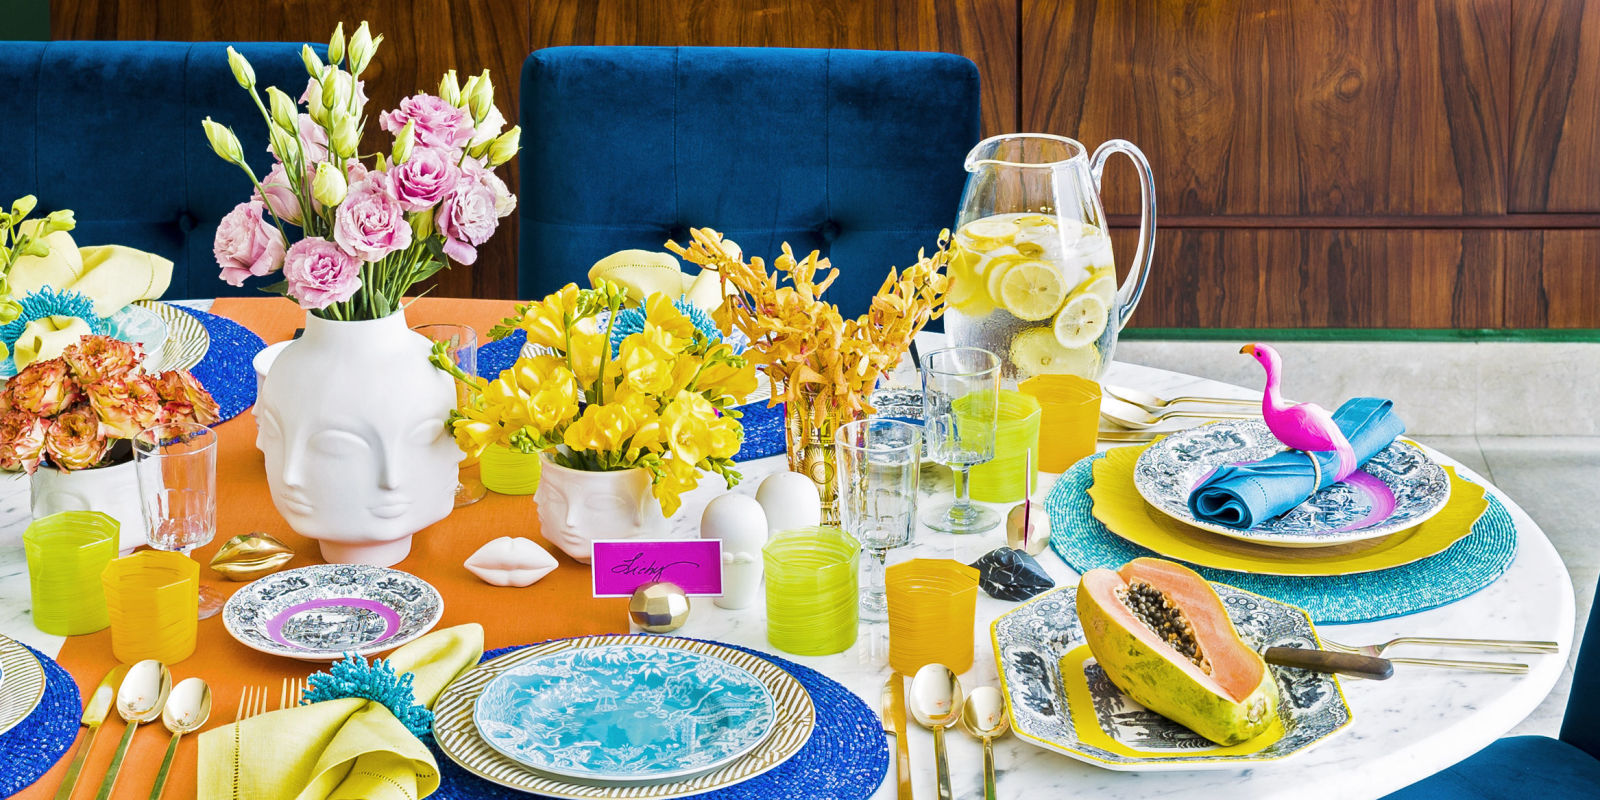 Tropical Brunch Tablescape Colorful Table Decor By Aaron: brunch table decorations